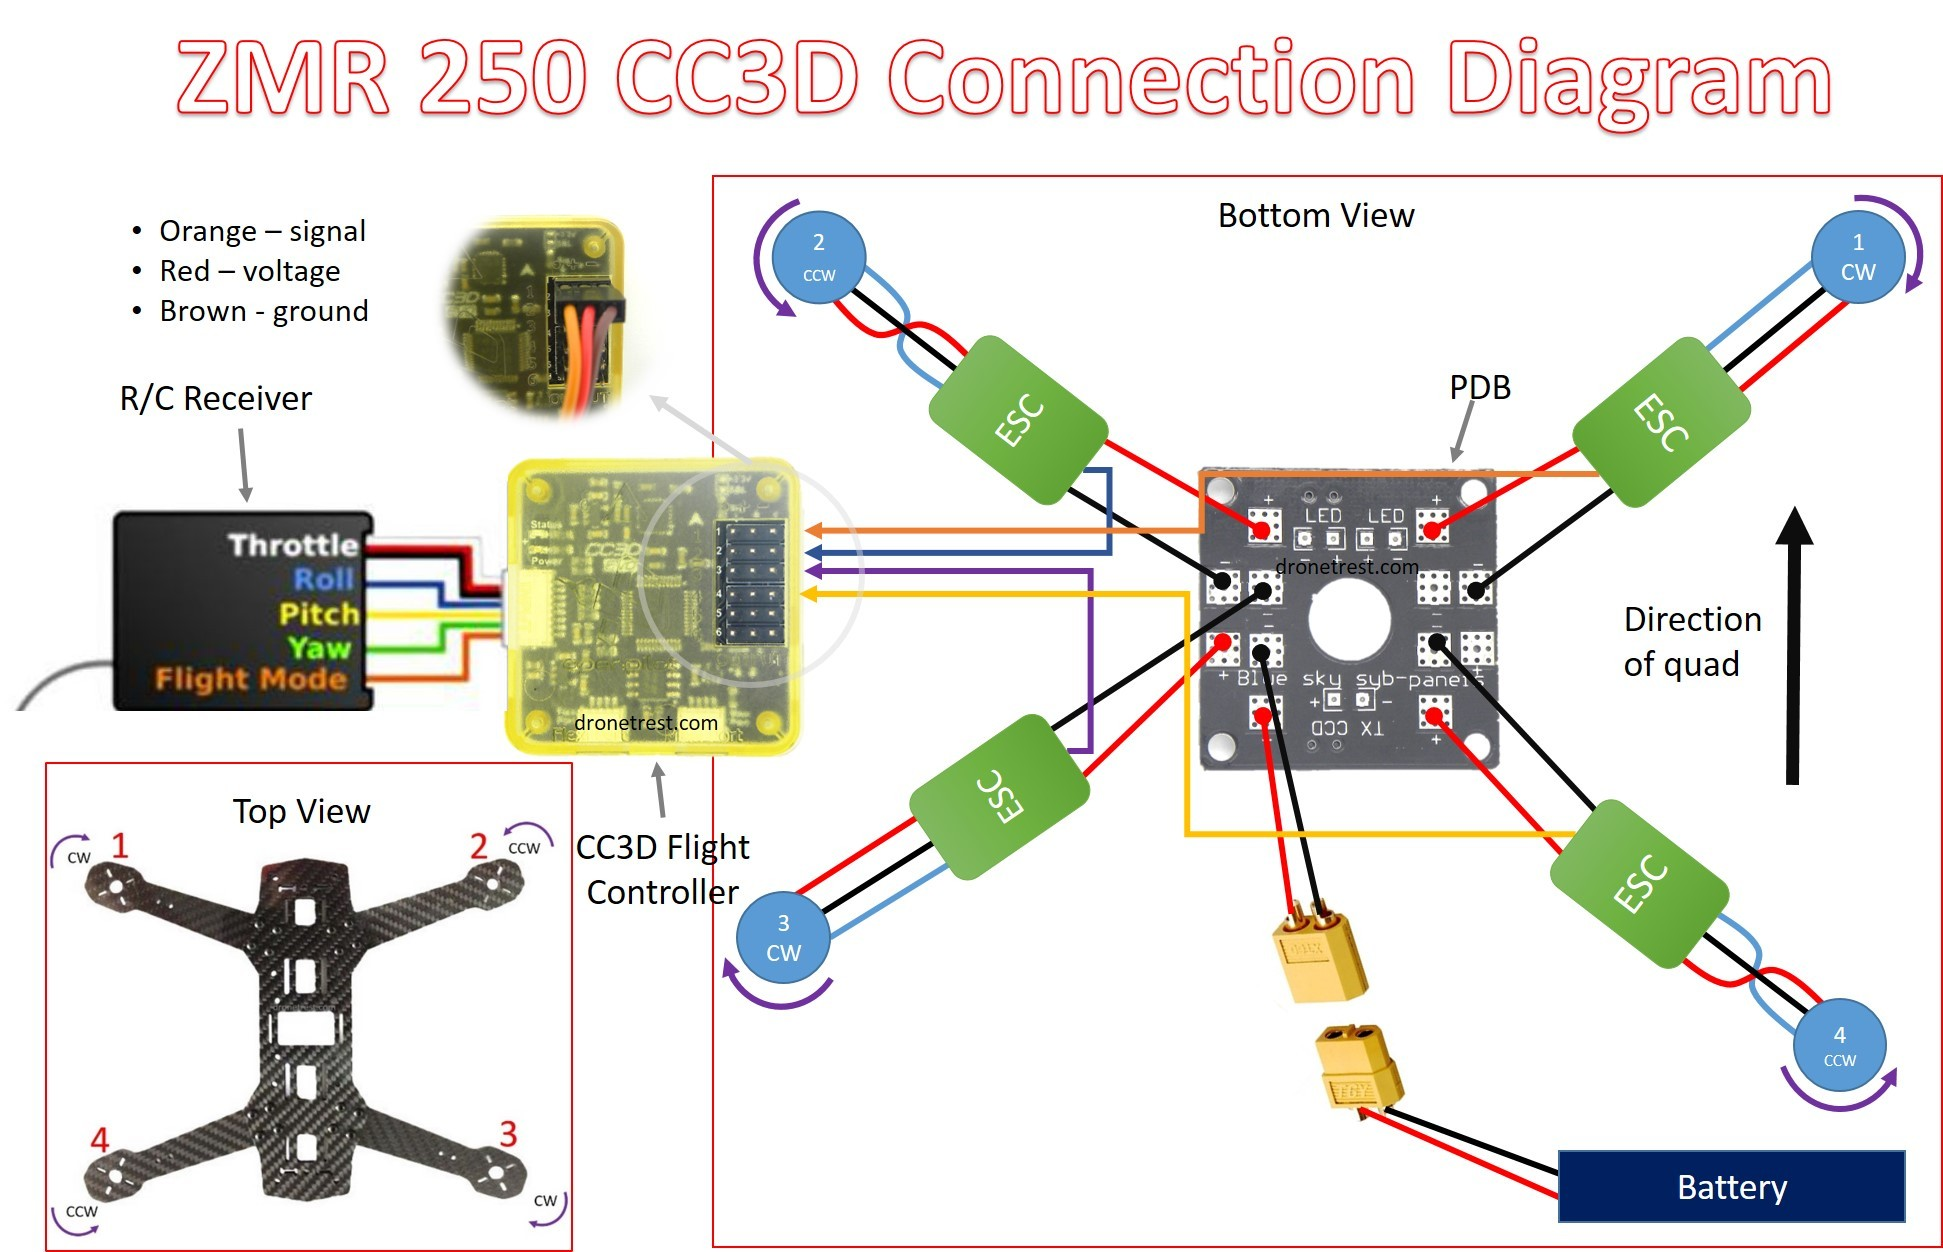 6359a9e4de77a2b154d6bdd8734ab879f0c4c51e qav zmr 250 assembly build guide guides dronetrest wiring diagram of a quadcopter at cos-gaming.co